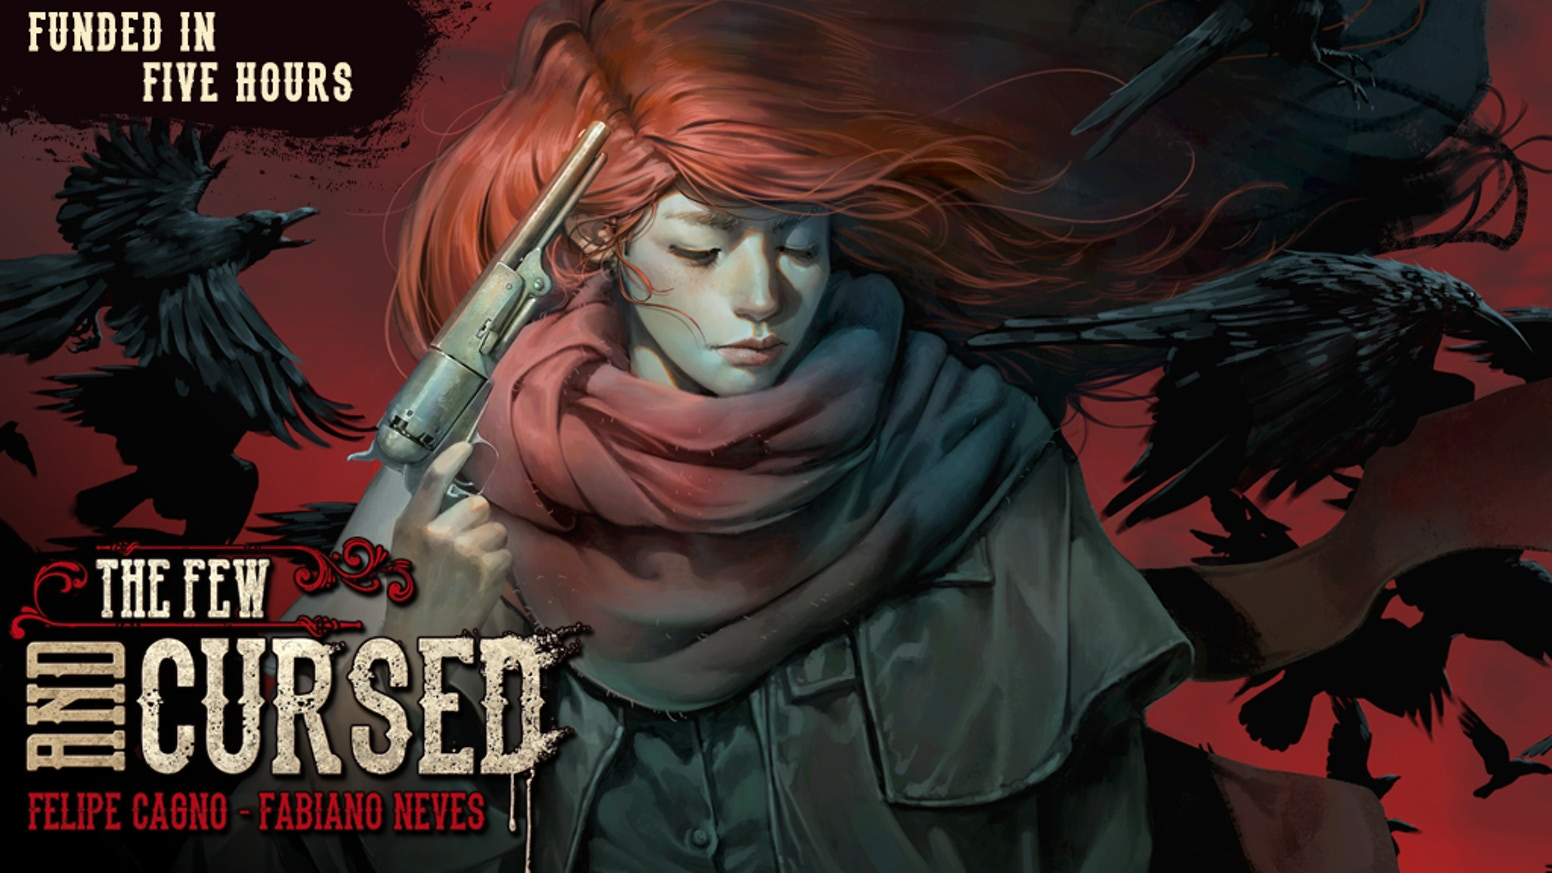 Join the Redhead in her hunt for The Crows of Mana'Olana in this epic supernatural western. Issues #1 thru #5 available in our store below: